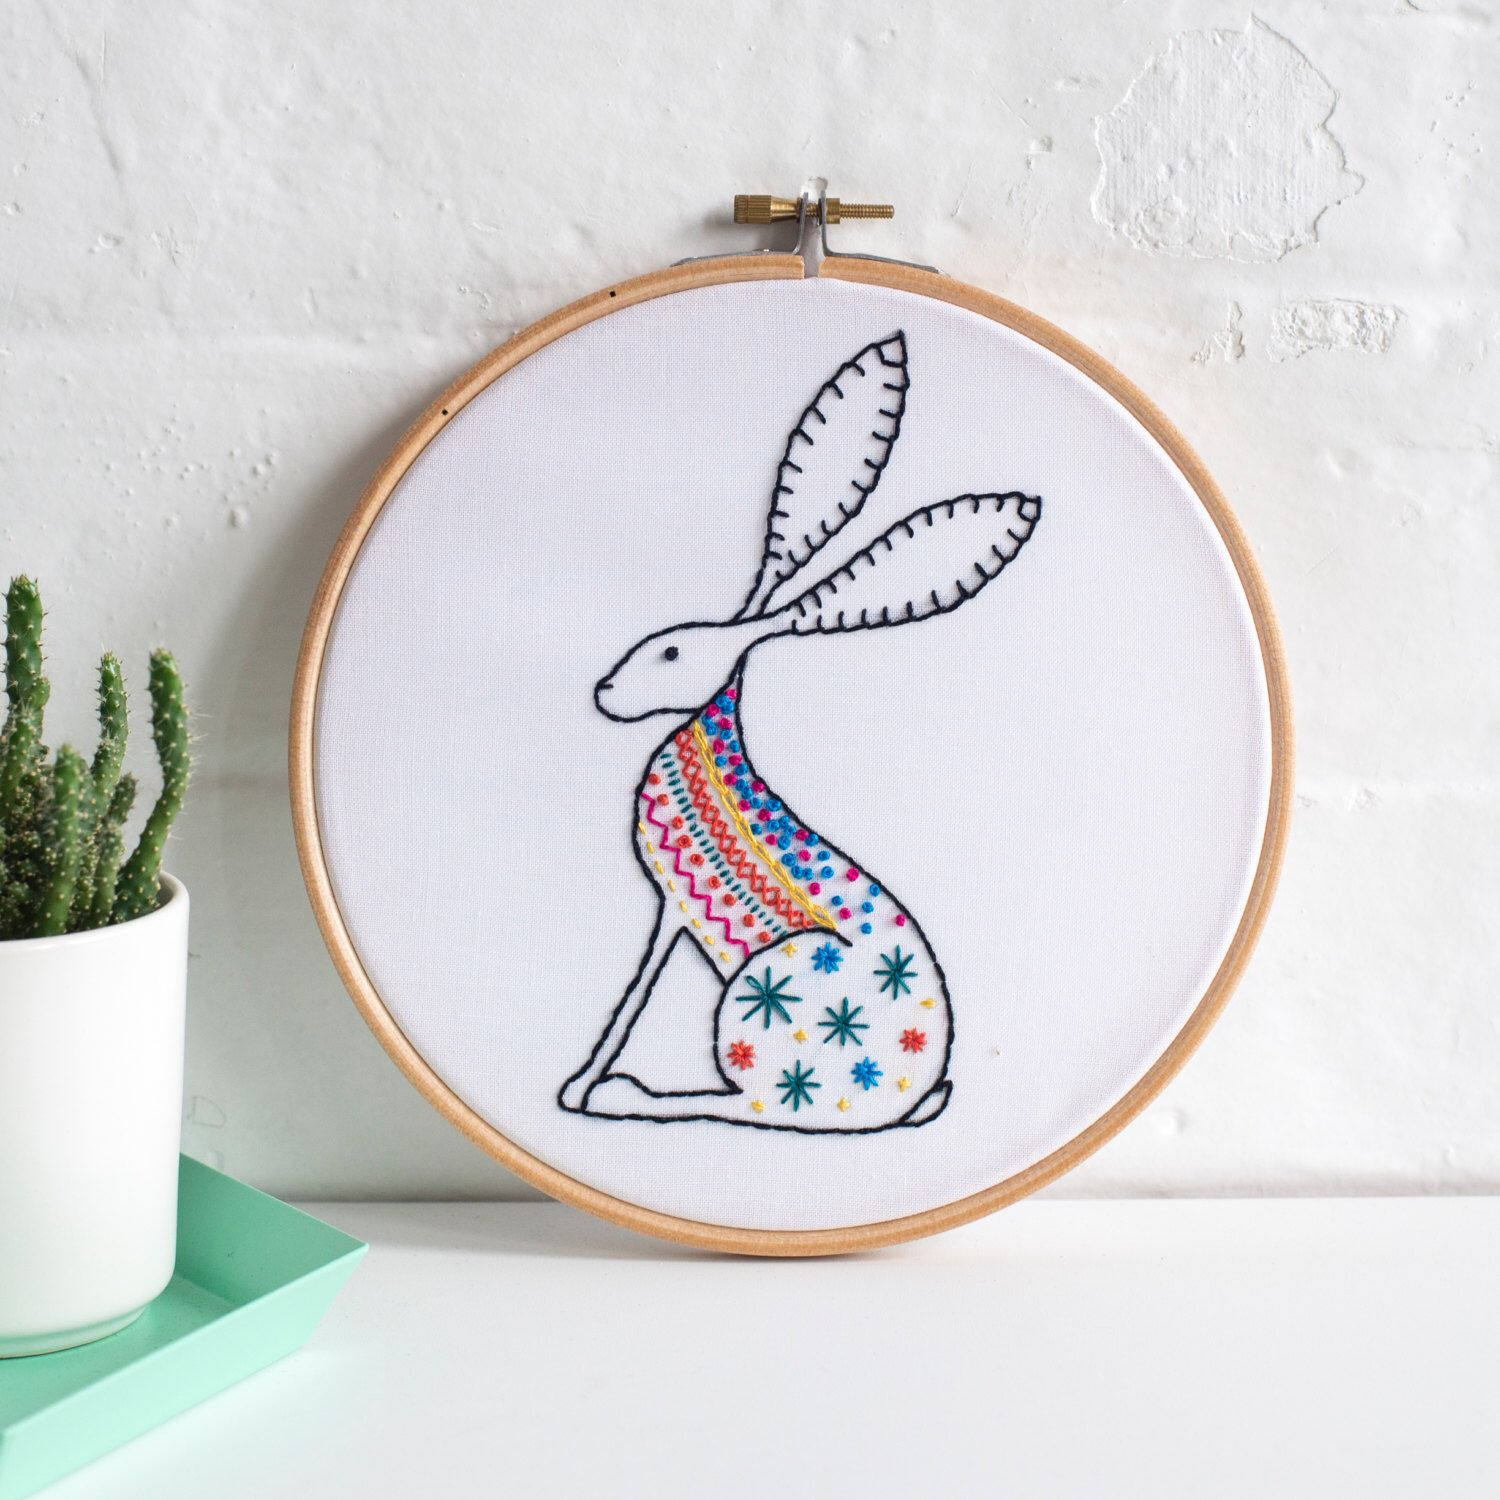 Hare Contemporary Embroidery Kit  Embroidery Hoop Art  Learn How To  Embroider  Hand Embroidery Kit  Craft Kit  Embroidery Pattern